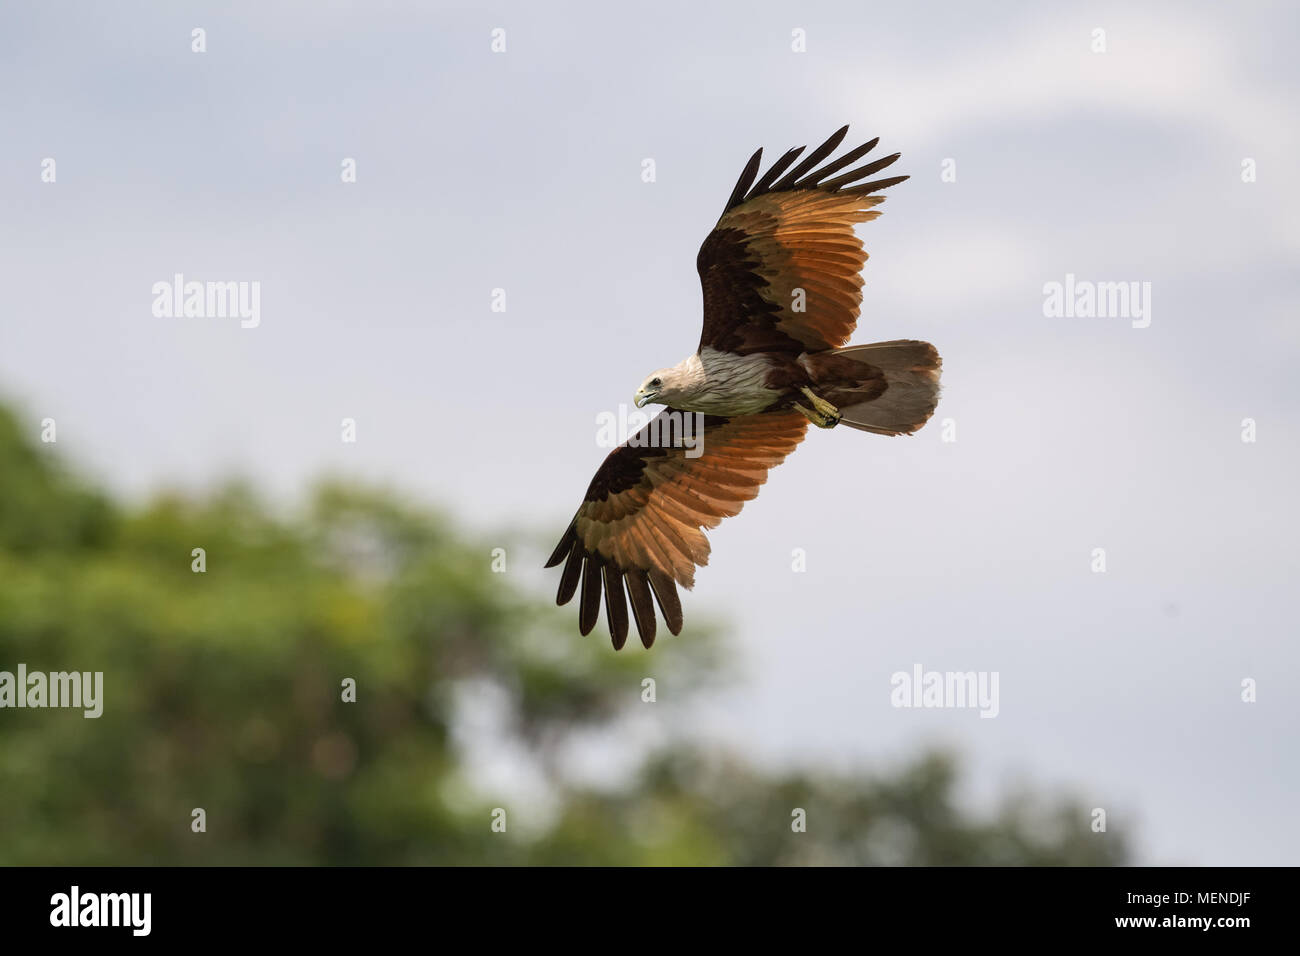 The brahminy kite (Haliastur indus), also known as the red-backed sea-eagle, is a medium-sized bird of prey in the family Accipitridae. - Stock Image